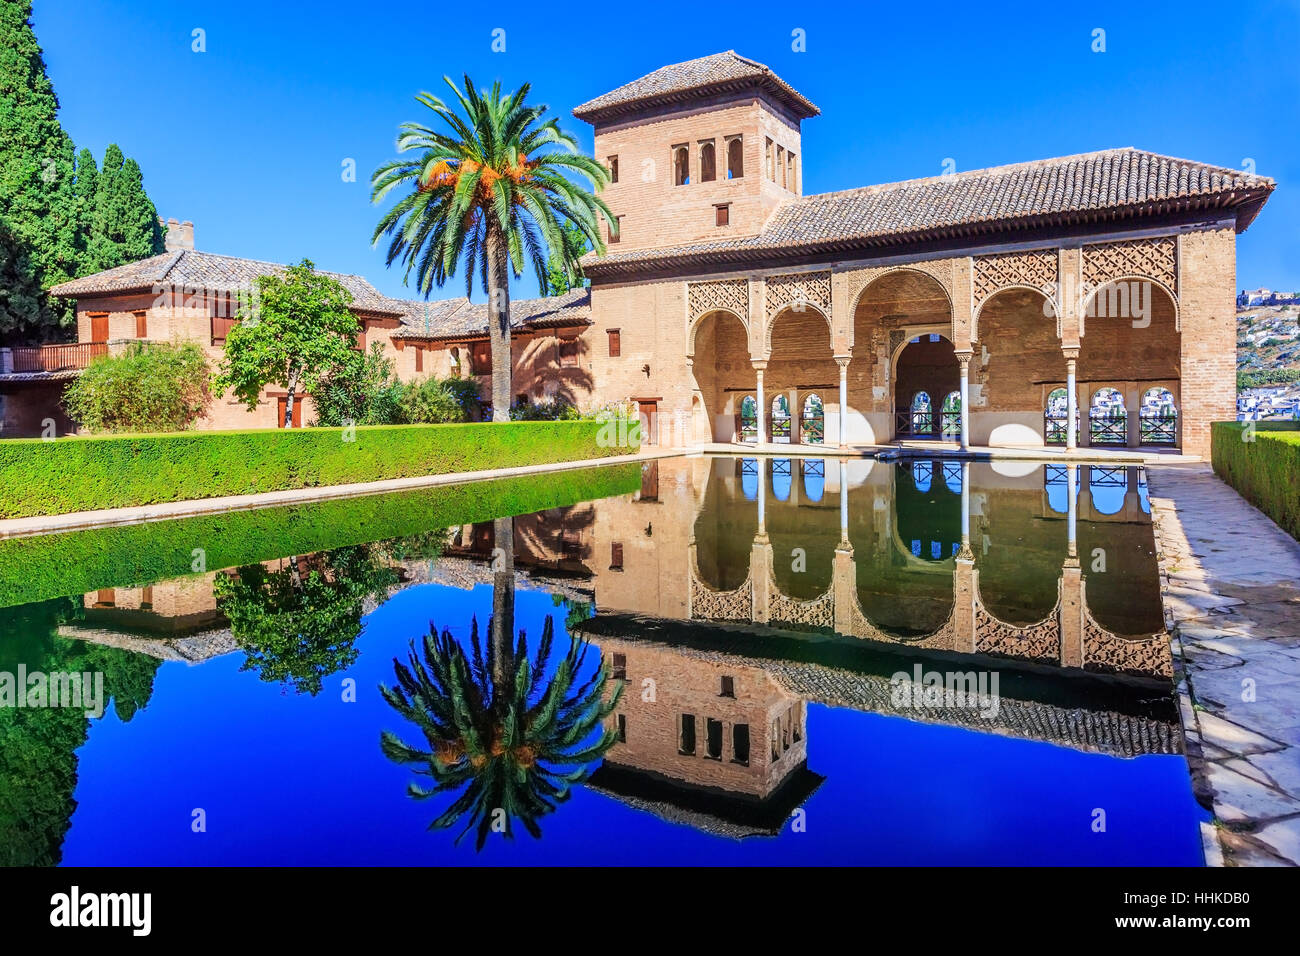 Alhambra, Granada, Spain. The Nasrid Palaces (Palacios Nazaríes) in the Alhambra fortress. - Stock Image